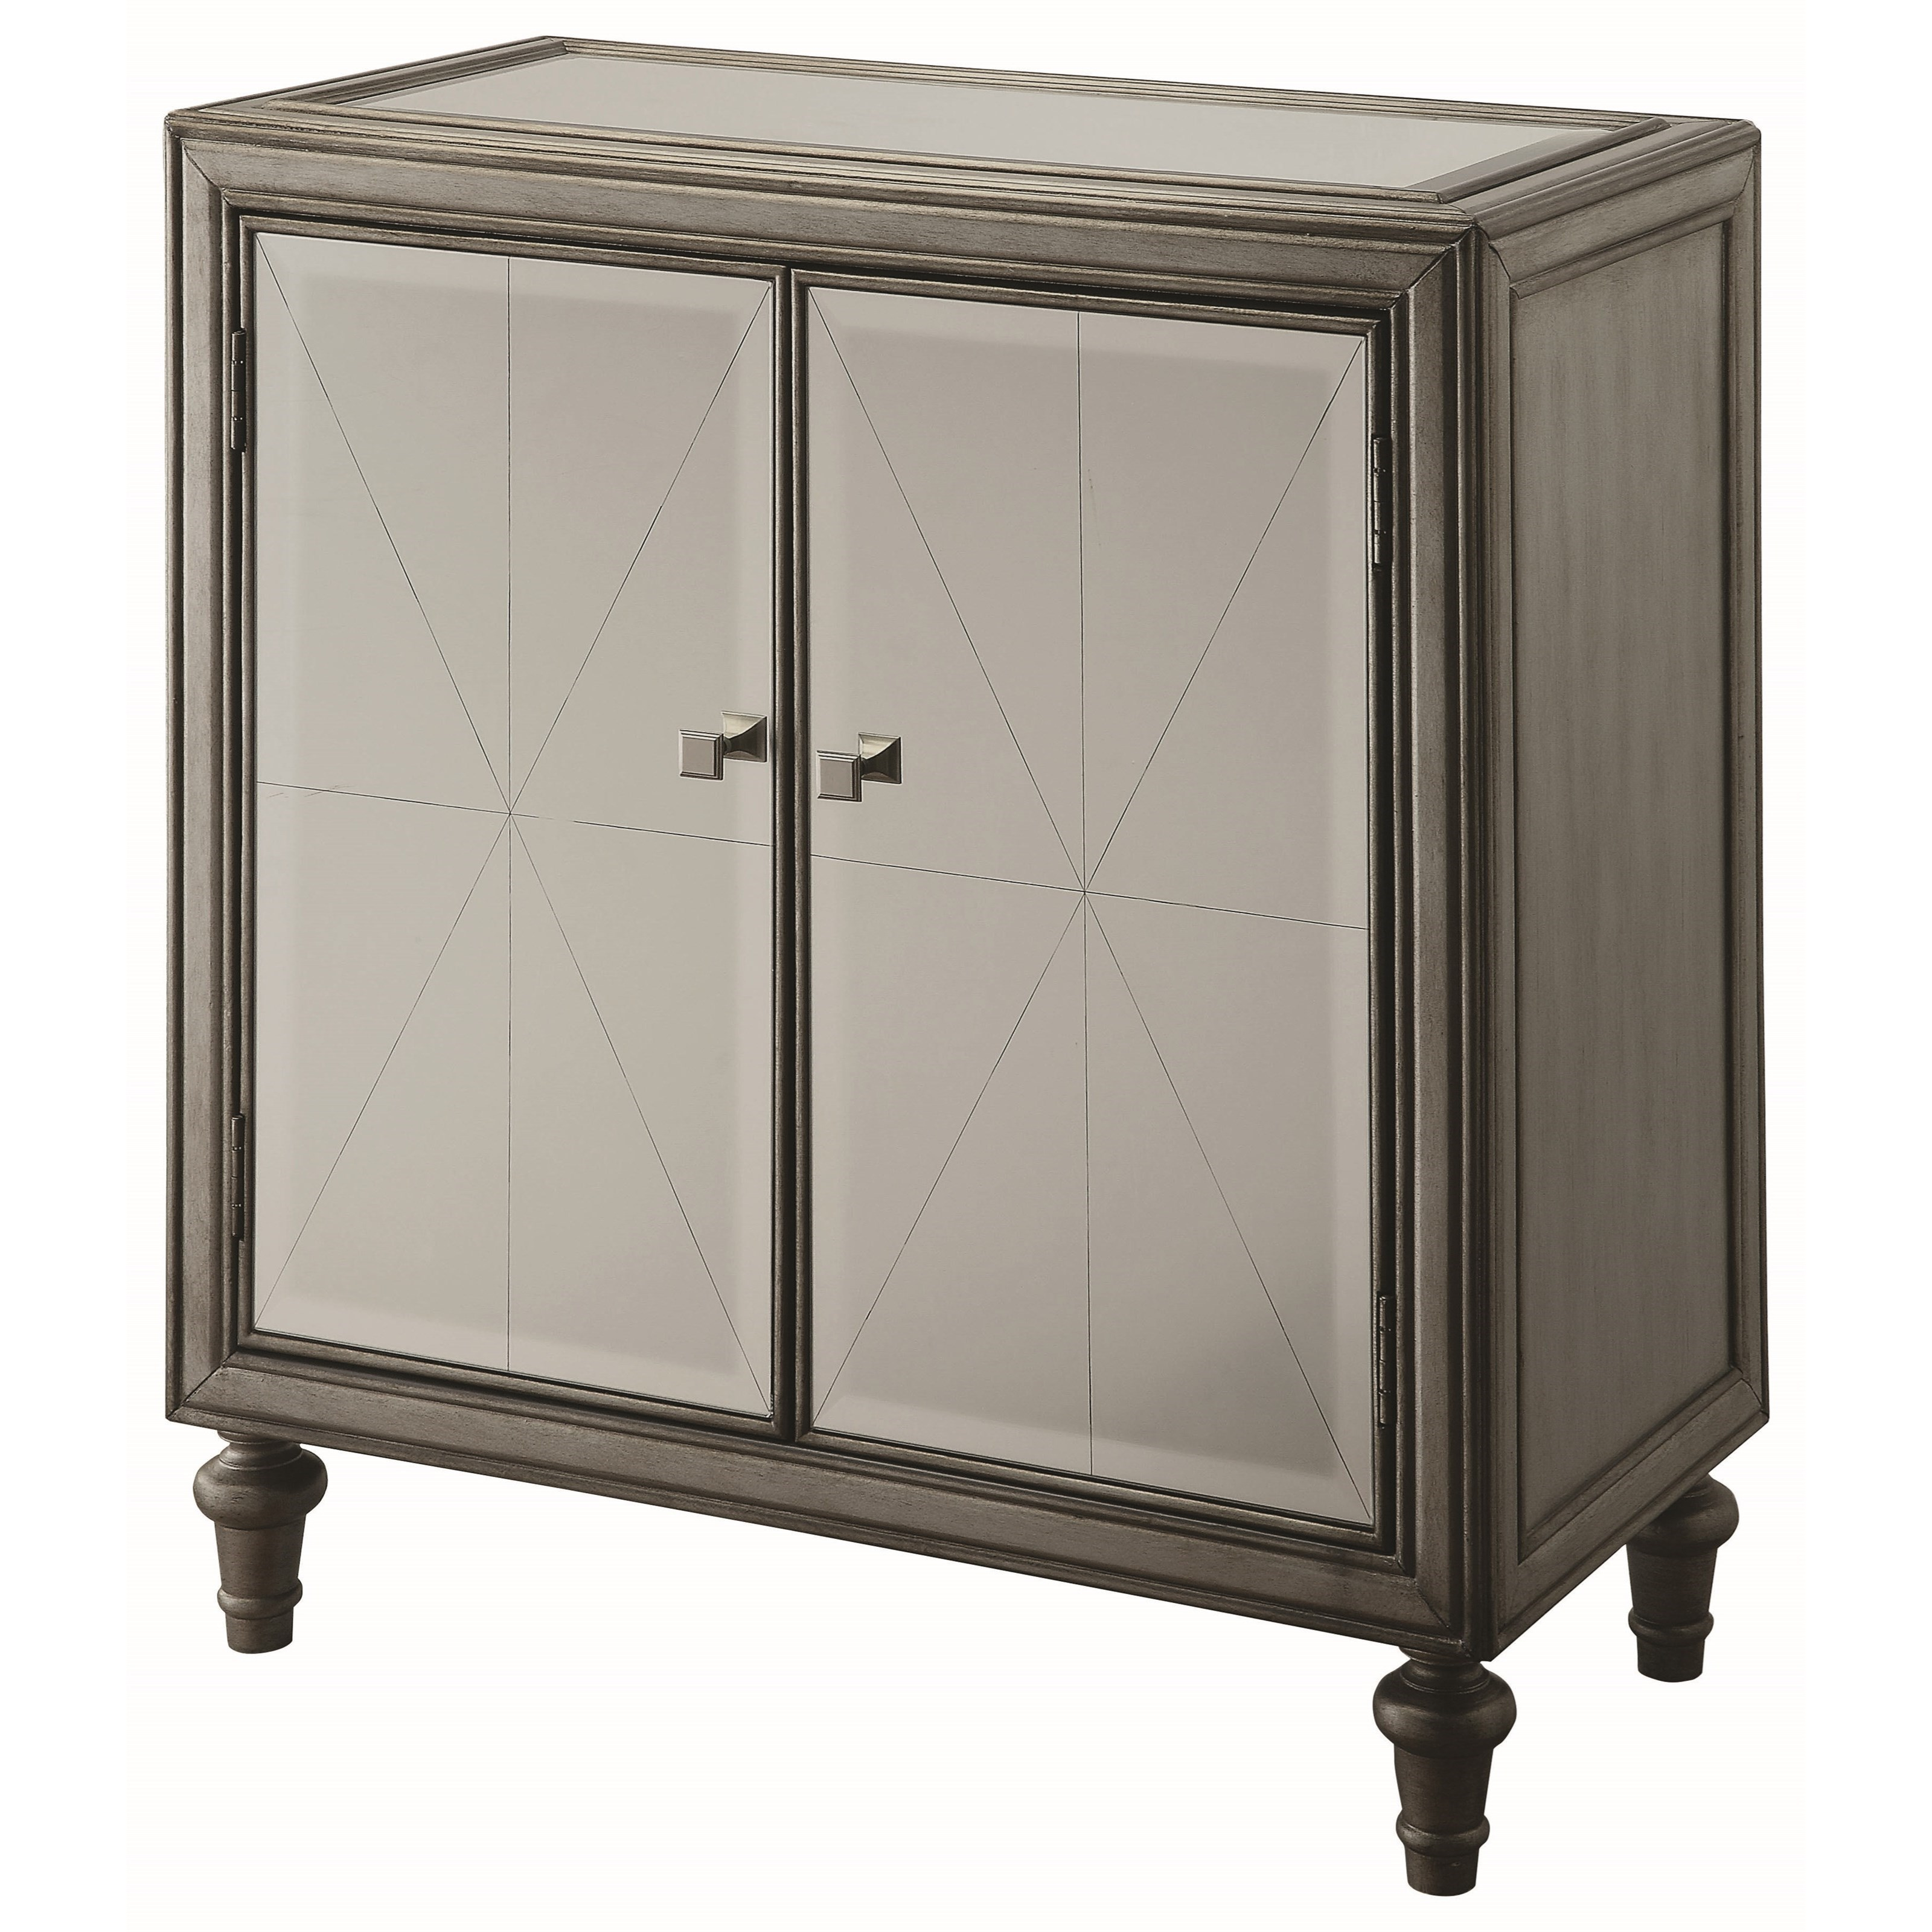 Coaster Accent Cabinets Cabinet - Item Number: 101049